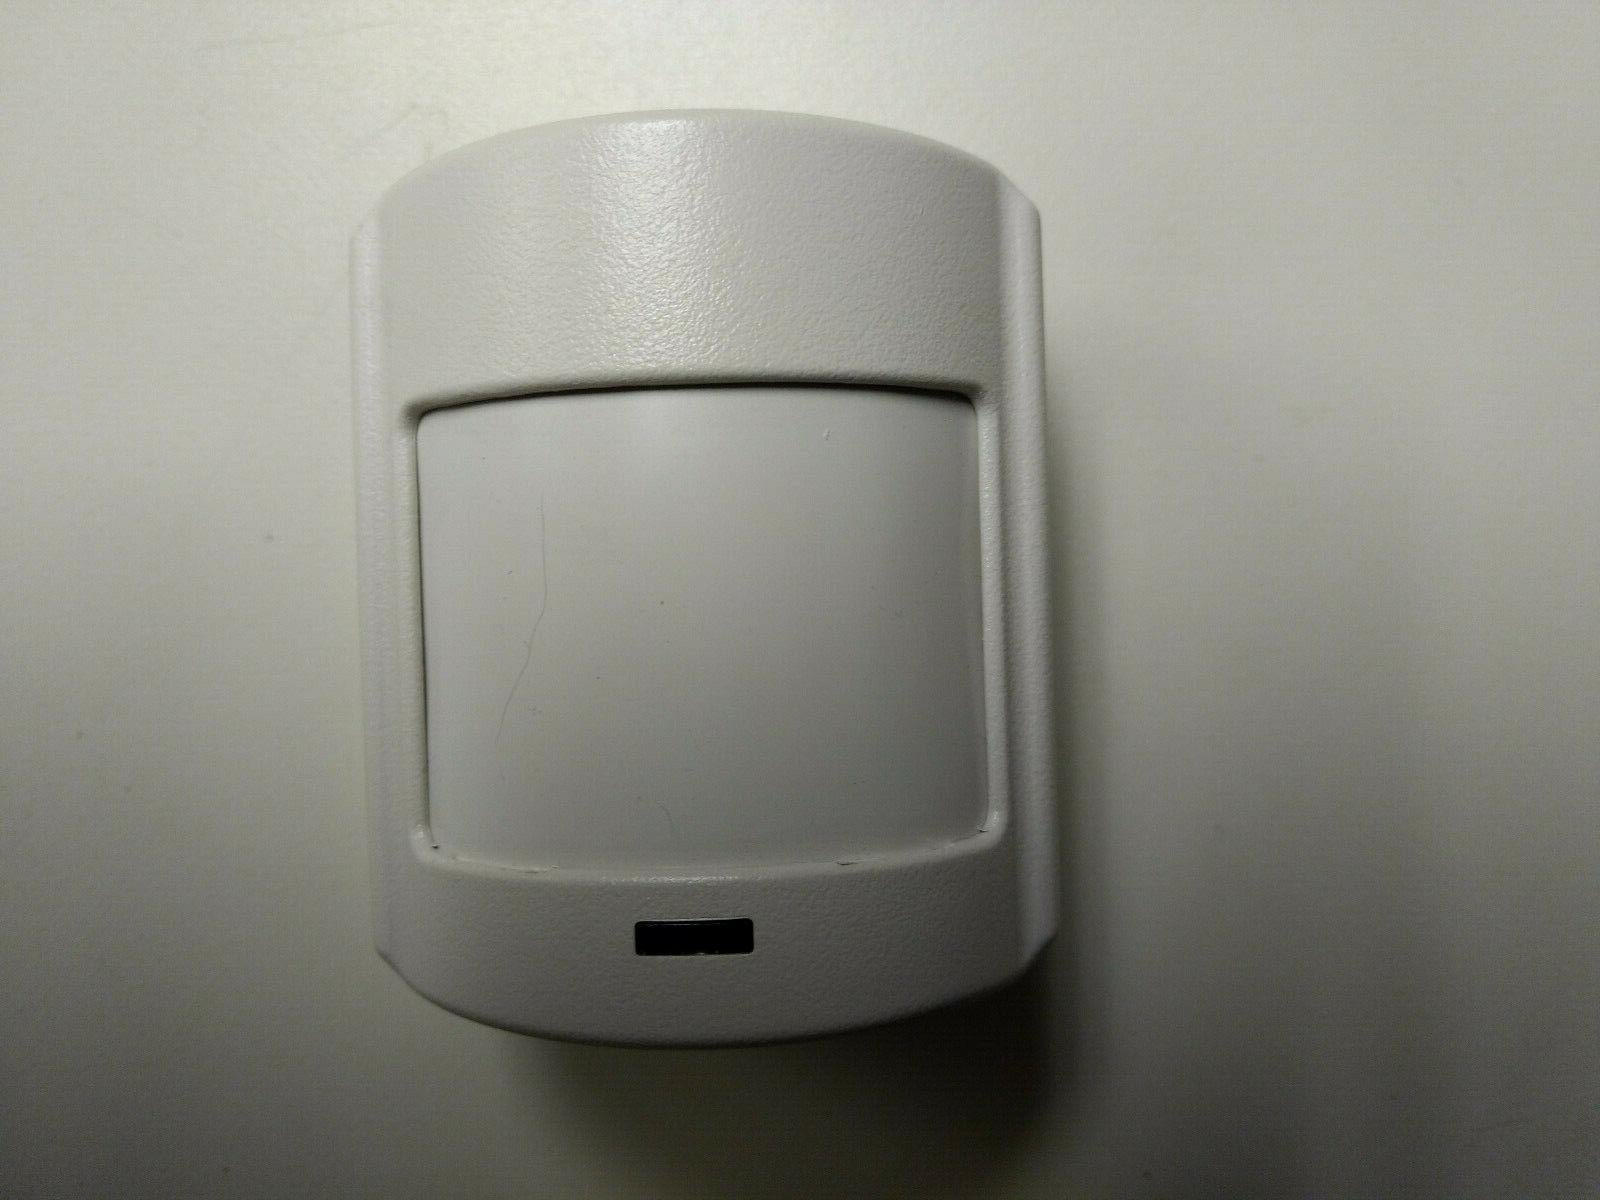 Interlogix alarm system package, mostly